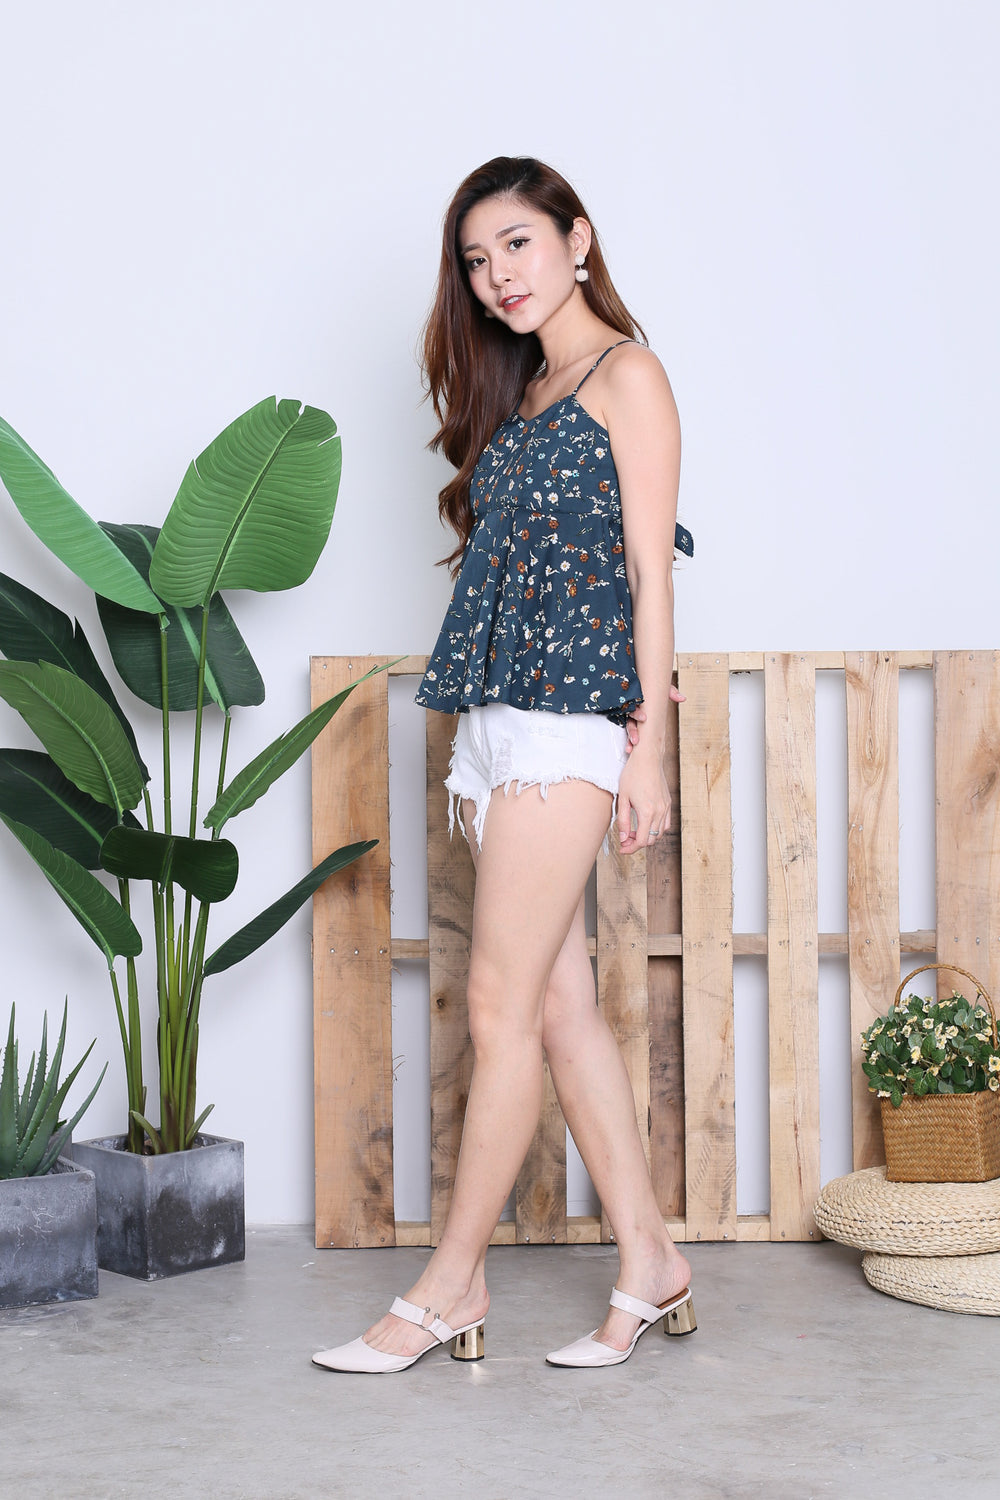 KIVA FLORAL BABYDOLL TOP IN DARK TEAL